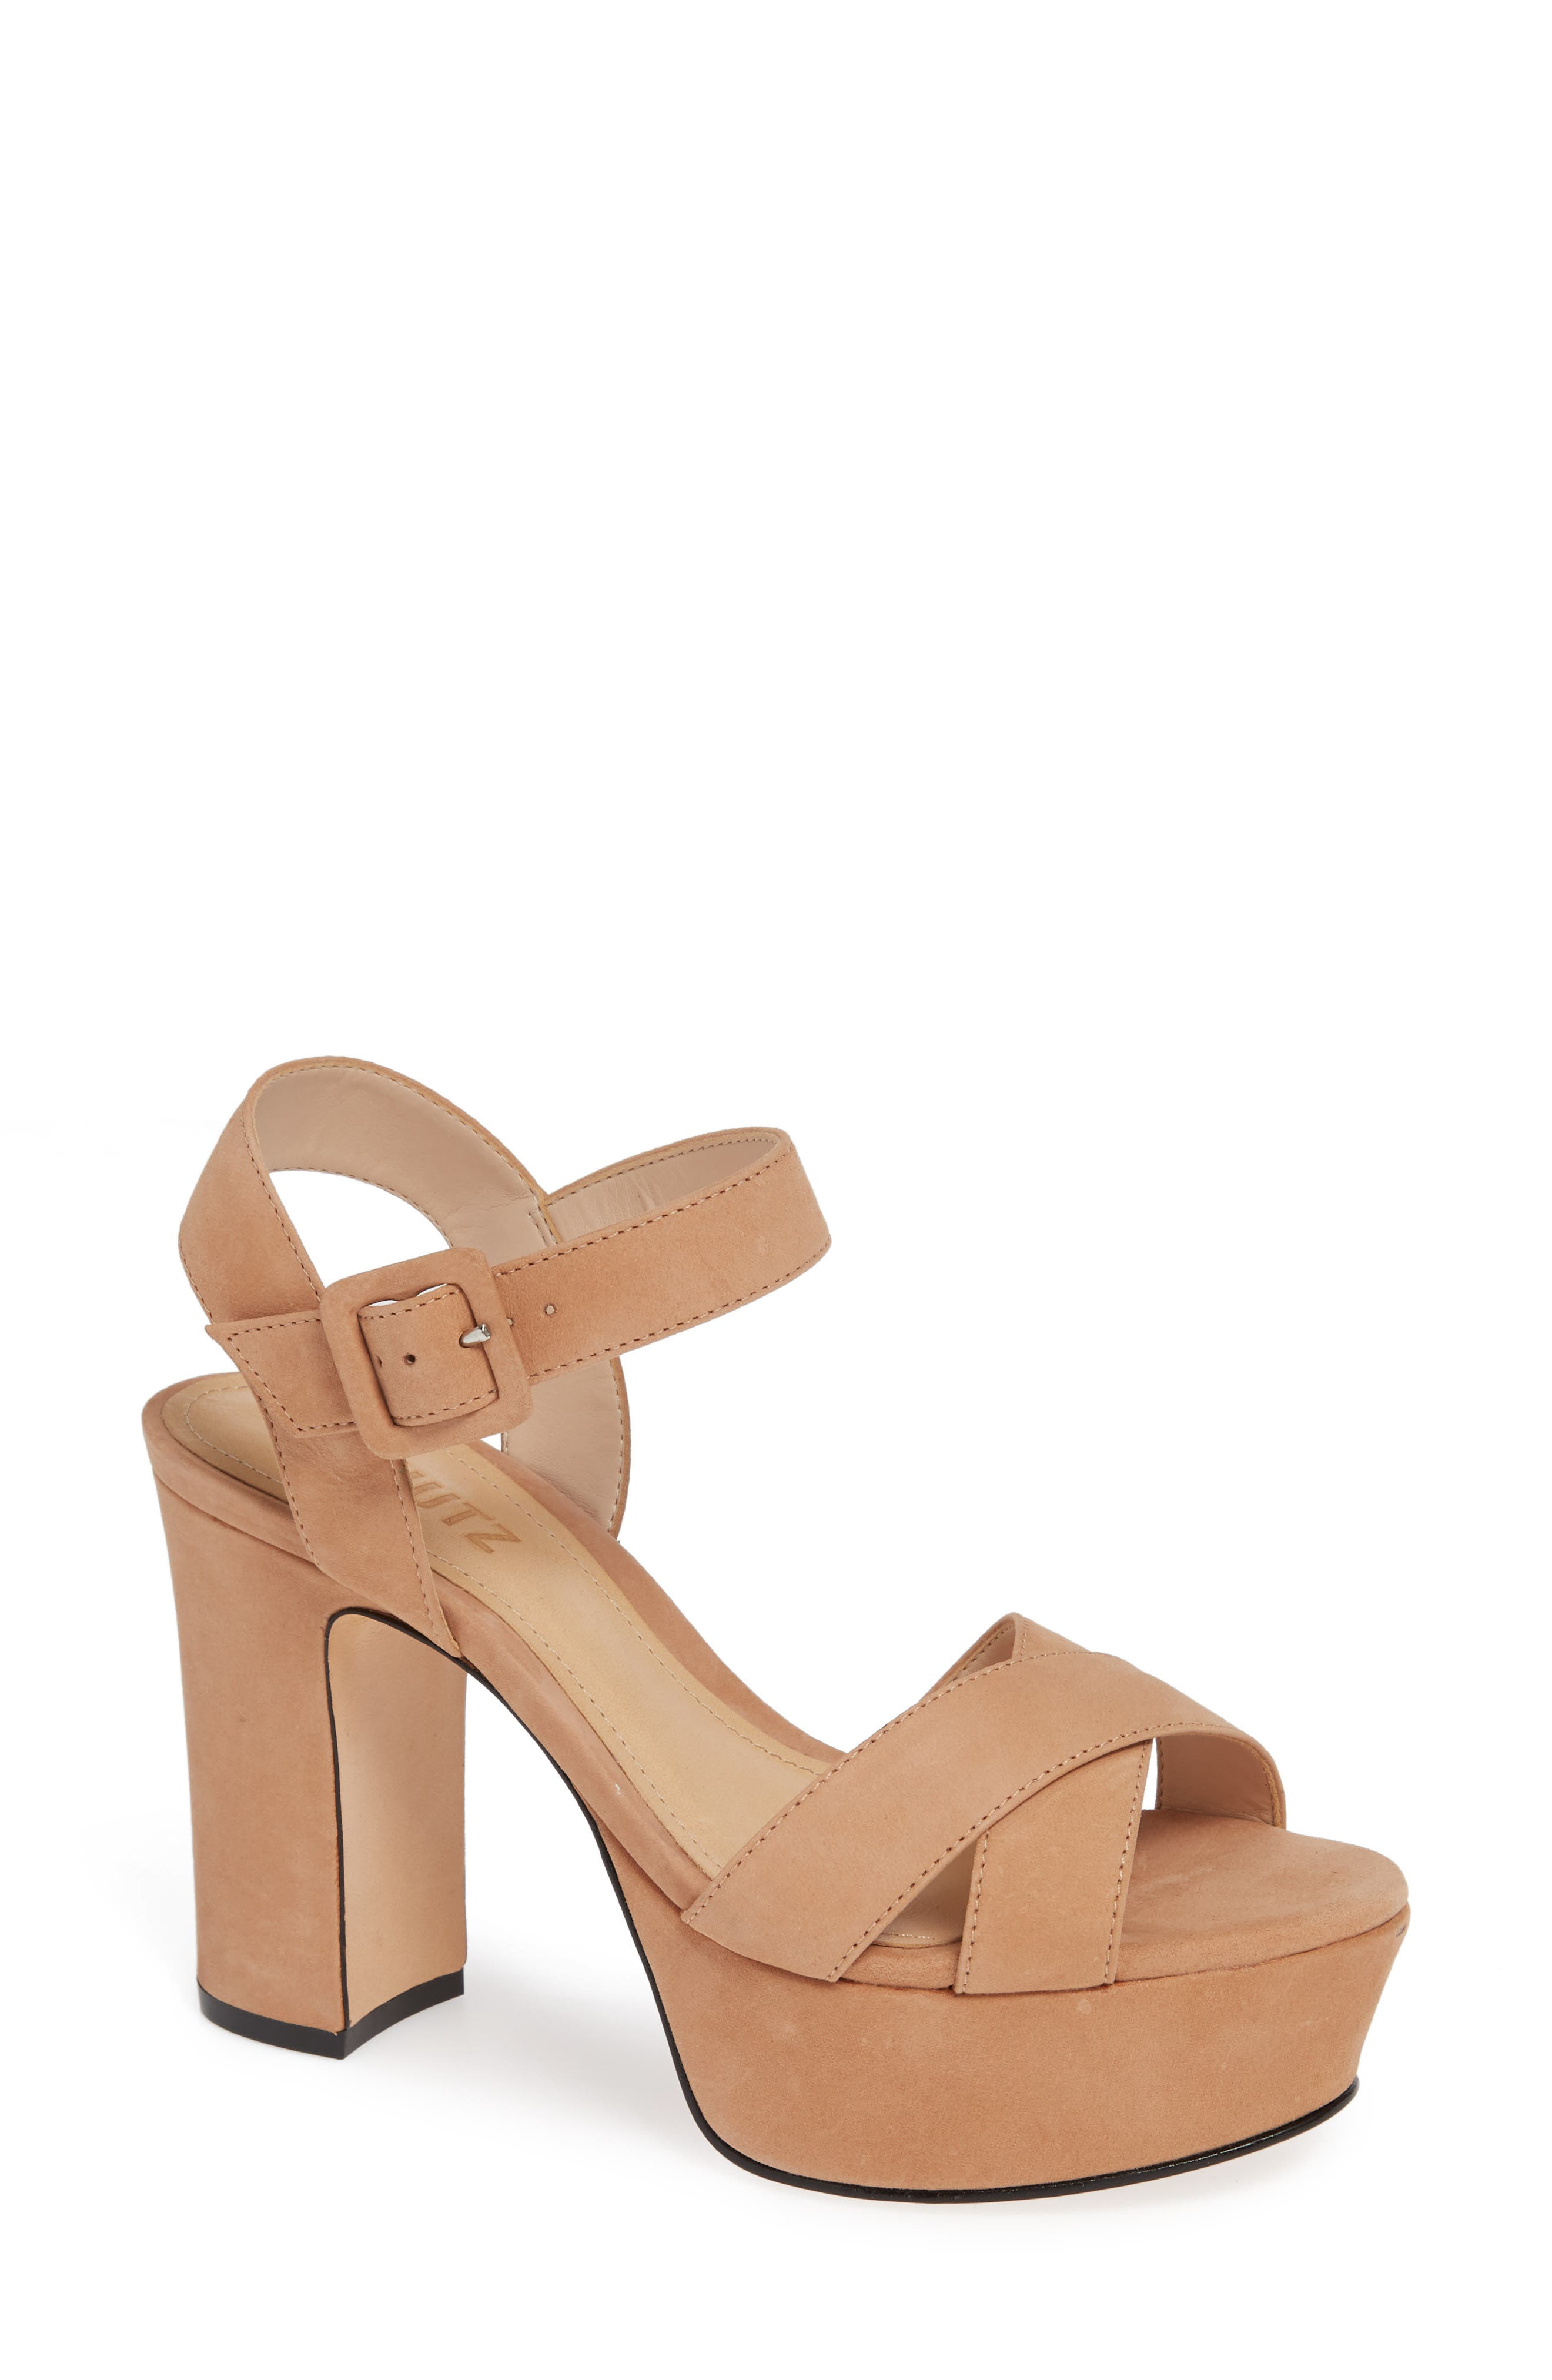 Tulia Sandal,                         Main,                         color, HONEY BEIGE NUBUCK